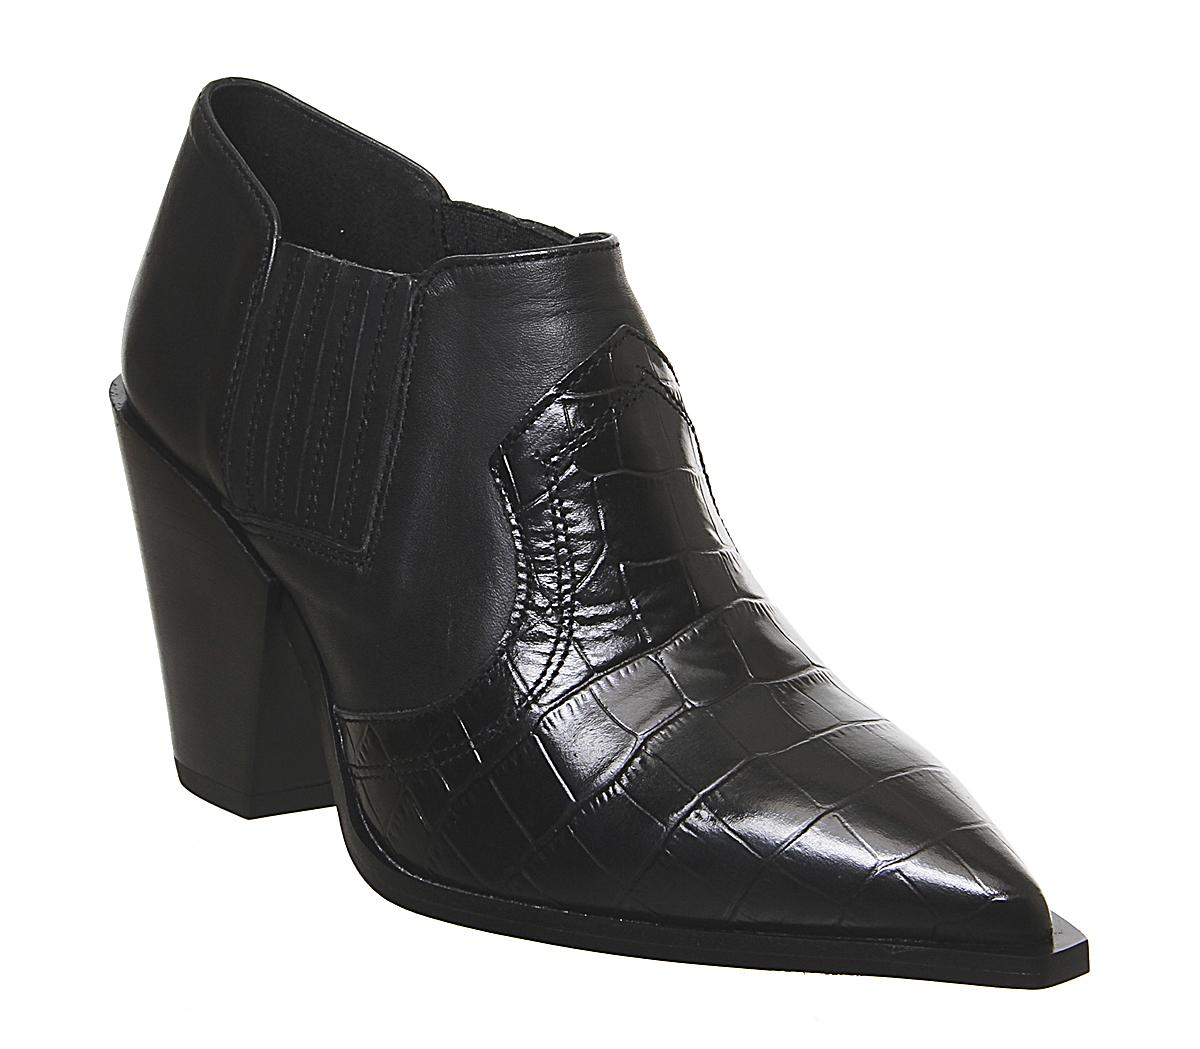 Womens Office Minnesota Western Shoe Boot Black Leather Croc Mix